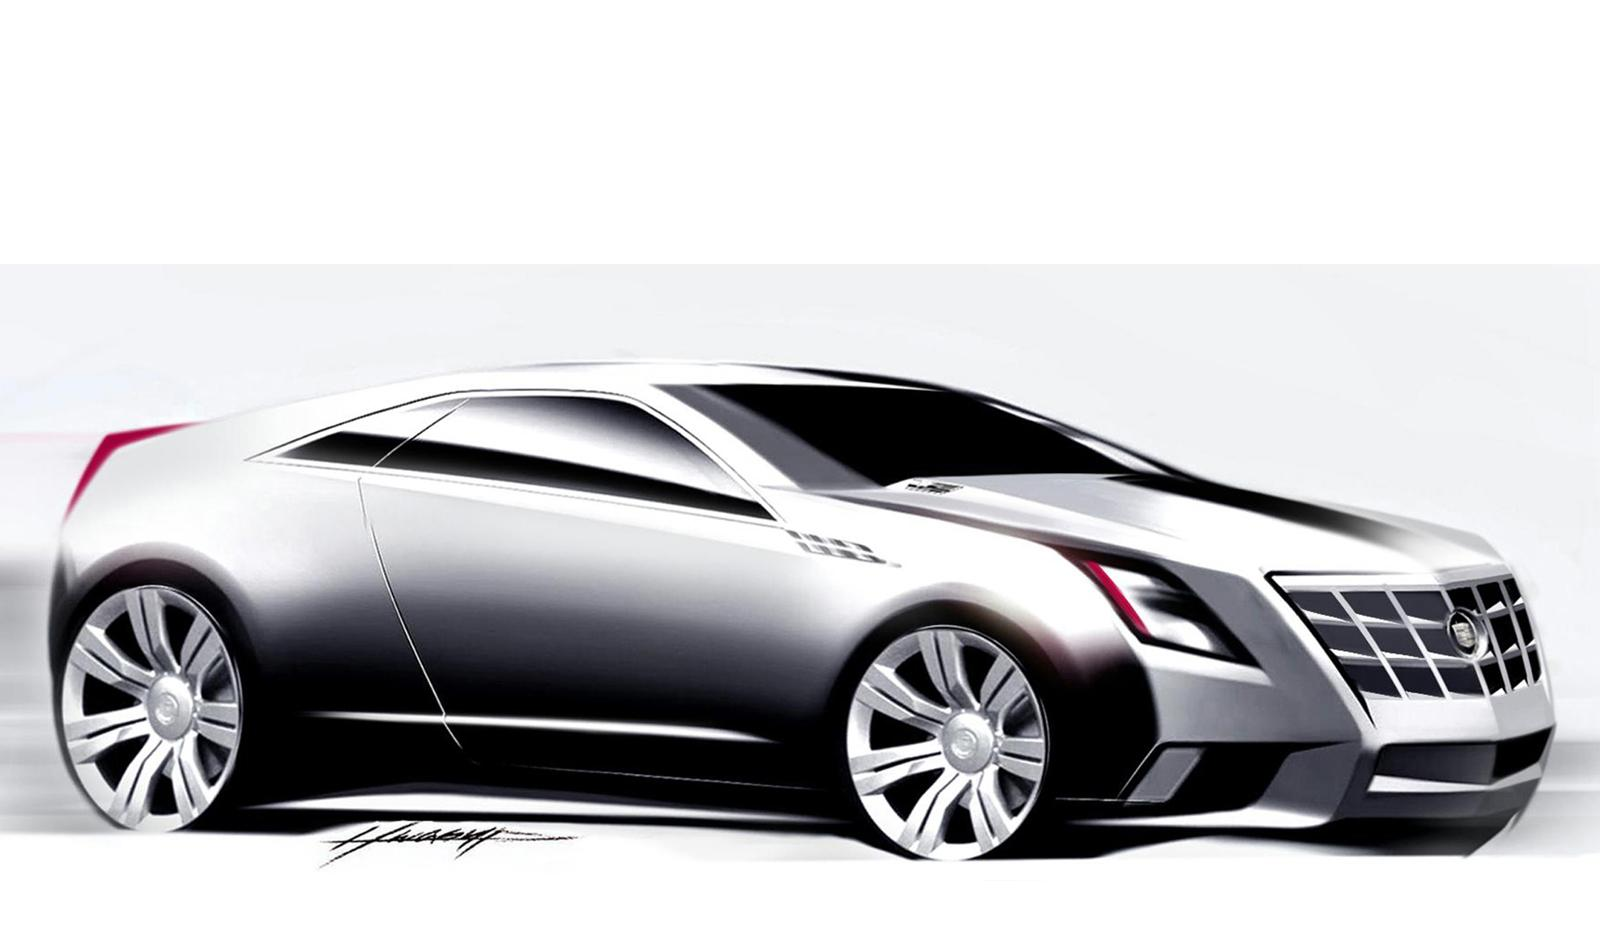 2008 Cadillac Cts Coupe Concept Top Speed